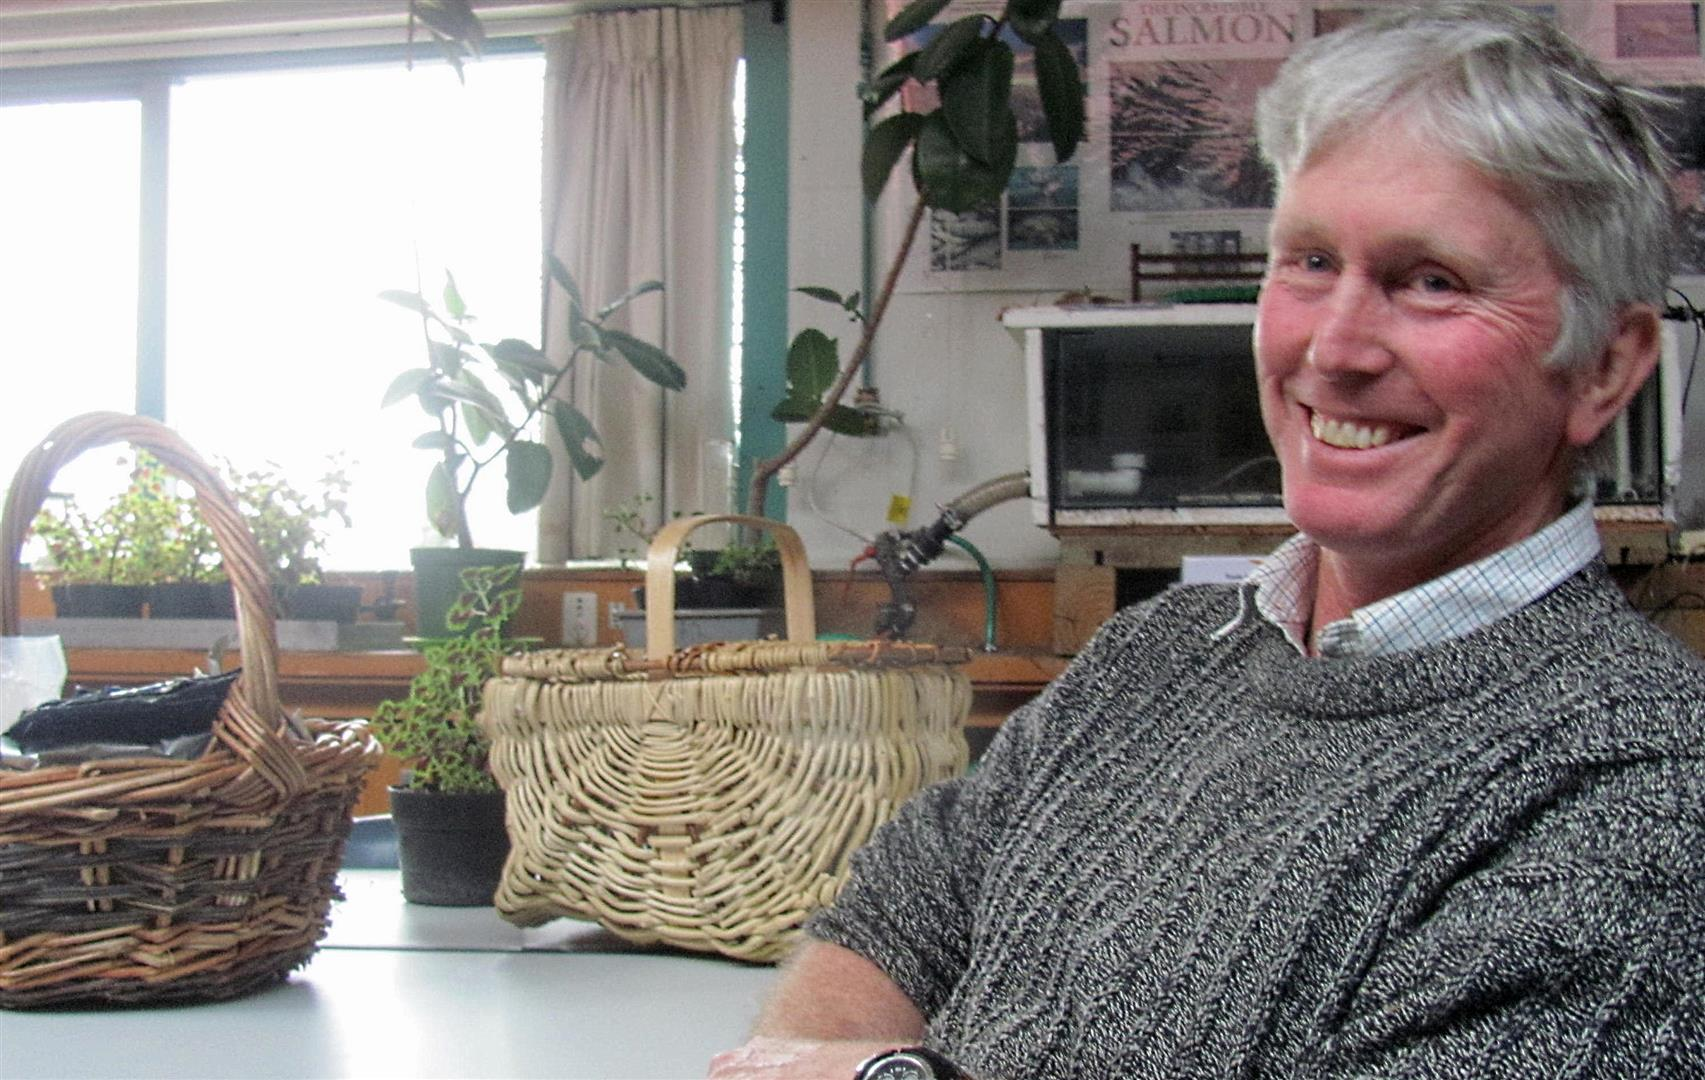 Stephen Millichamp, pictured with one of his woven baskets, still has Colieus plants grown from cuttings inherited from mid-1980s Ashburton College agriculture department head Ian McIvor. Photo: Toni Williams